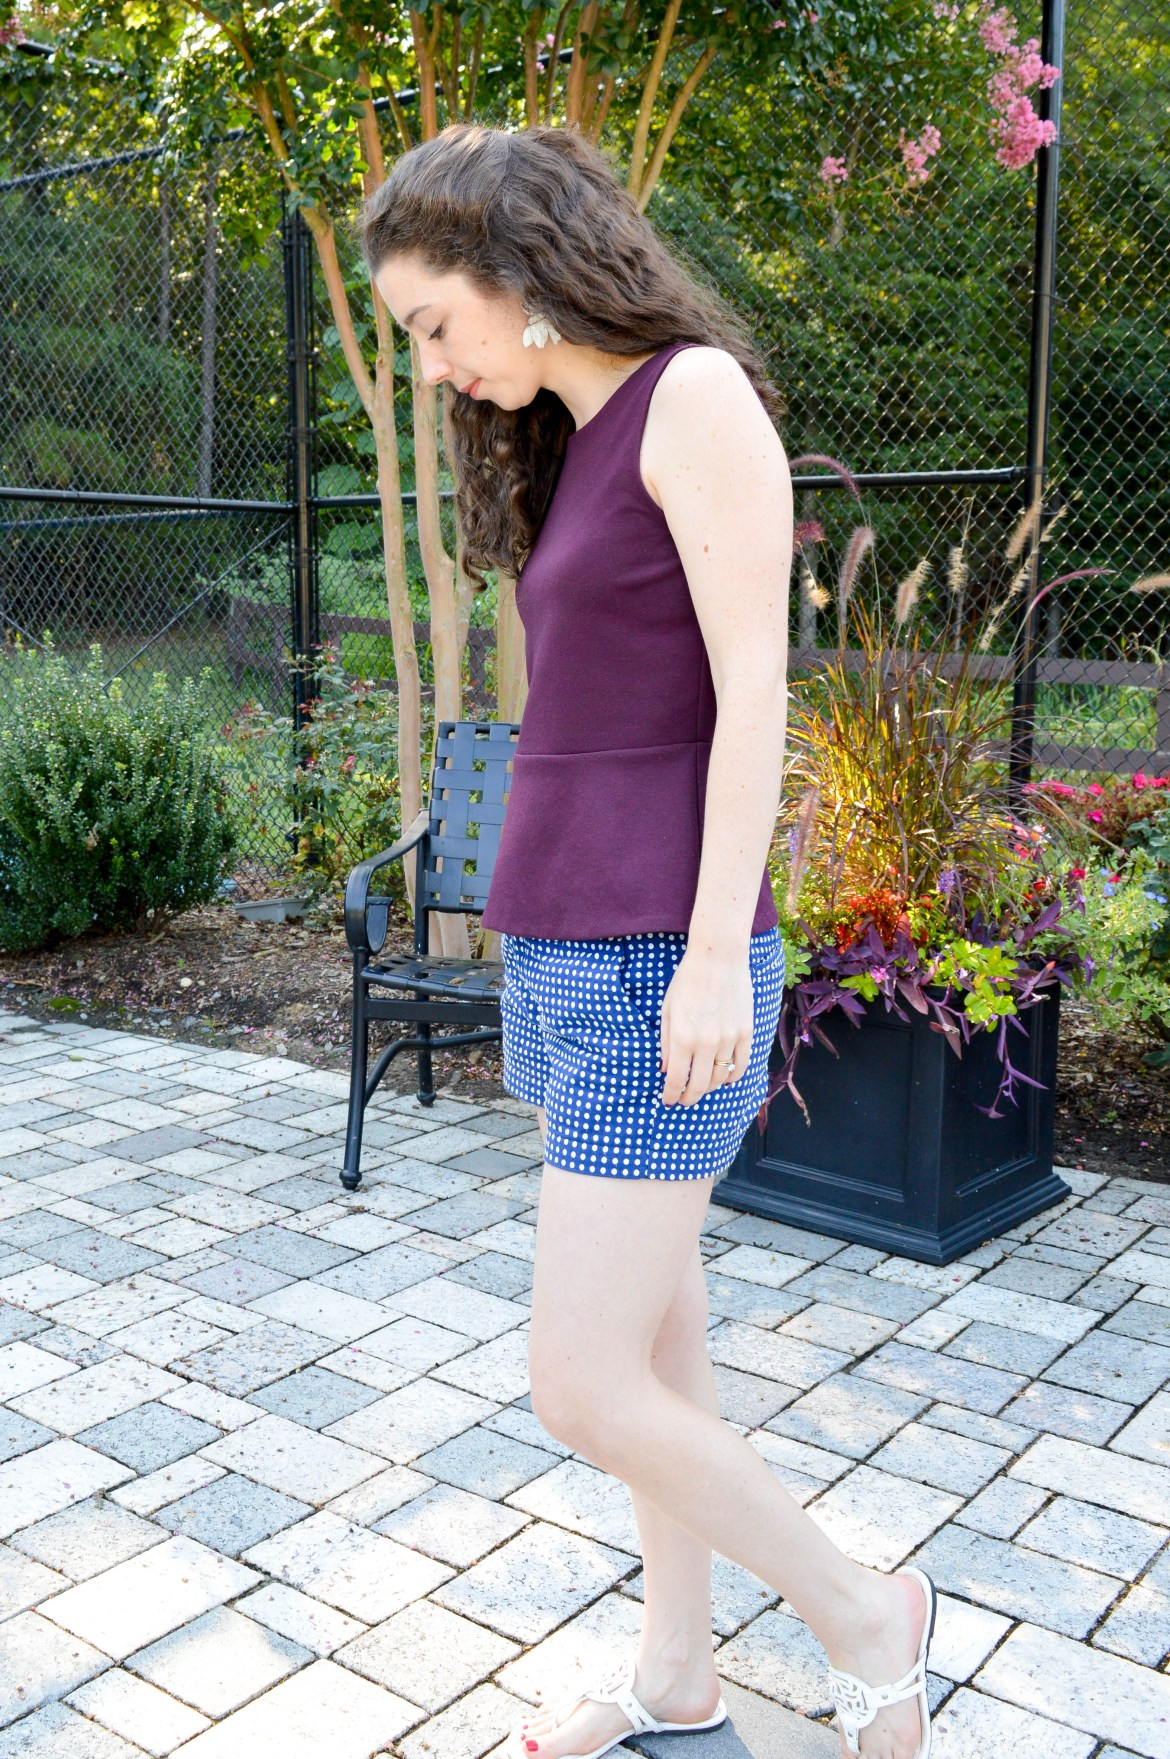 purple peplum top + blue & white polka dot shorts | Unexpected and fun summer outfit